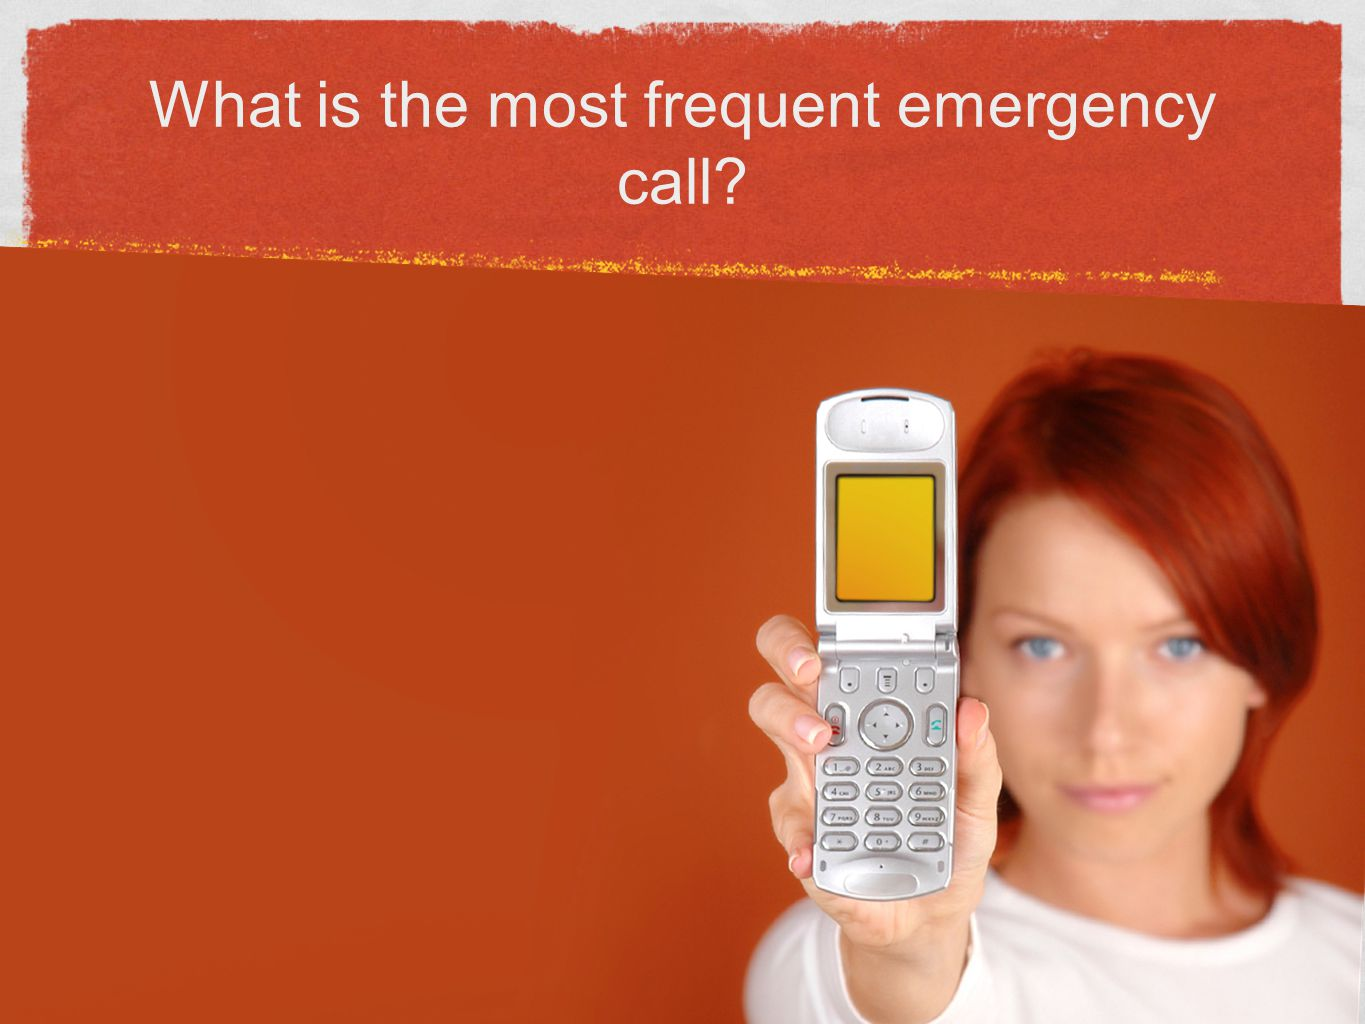 What is the most frequent emergency call